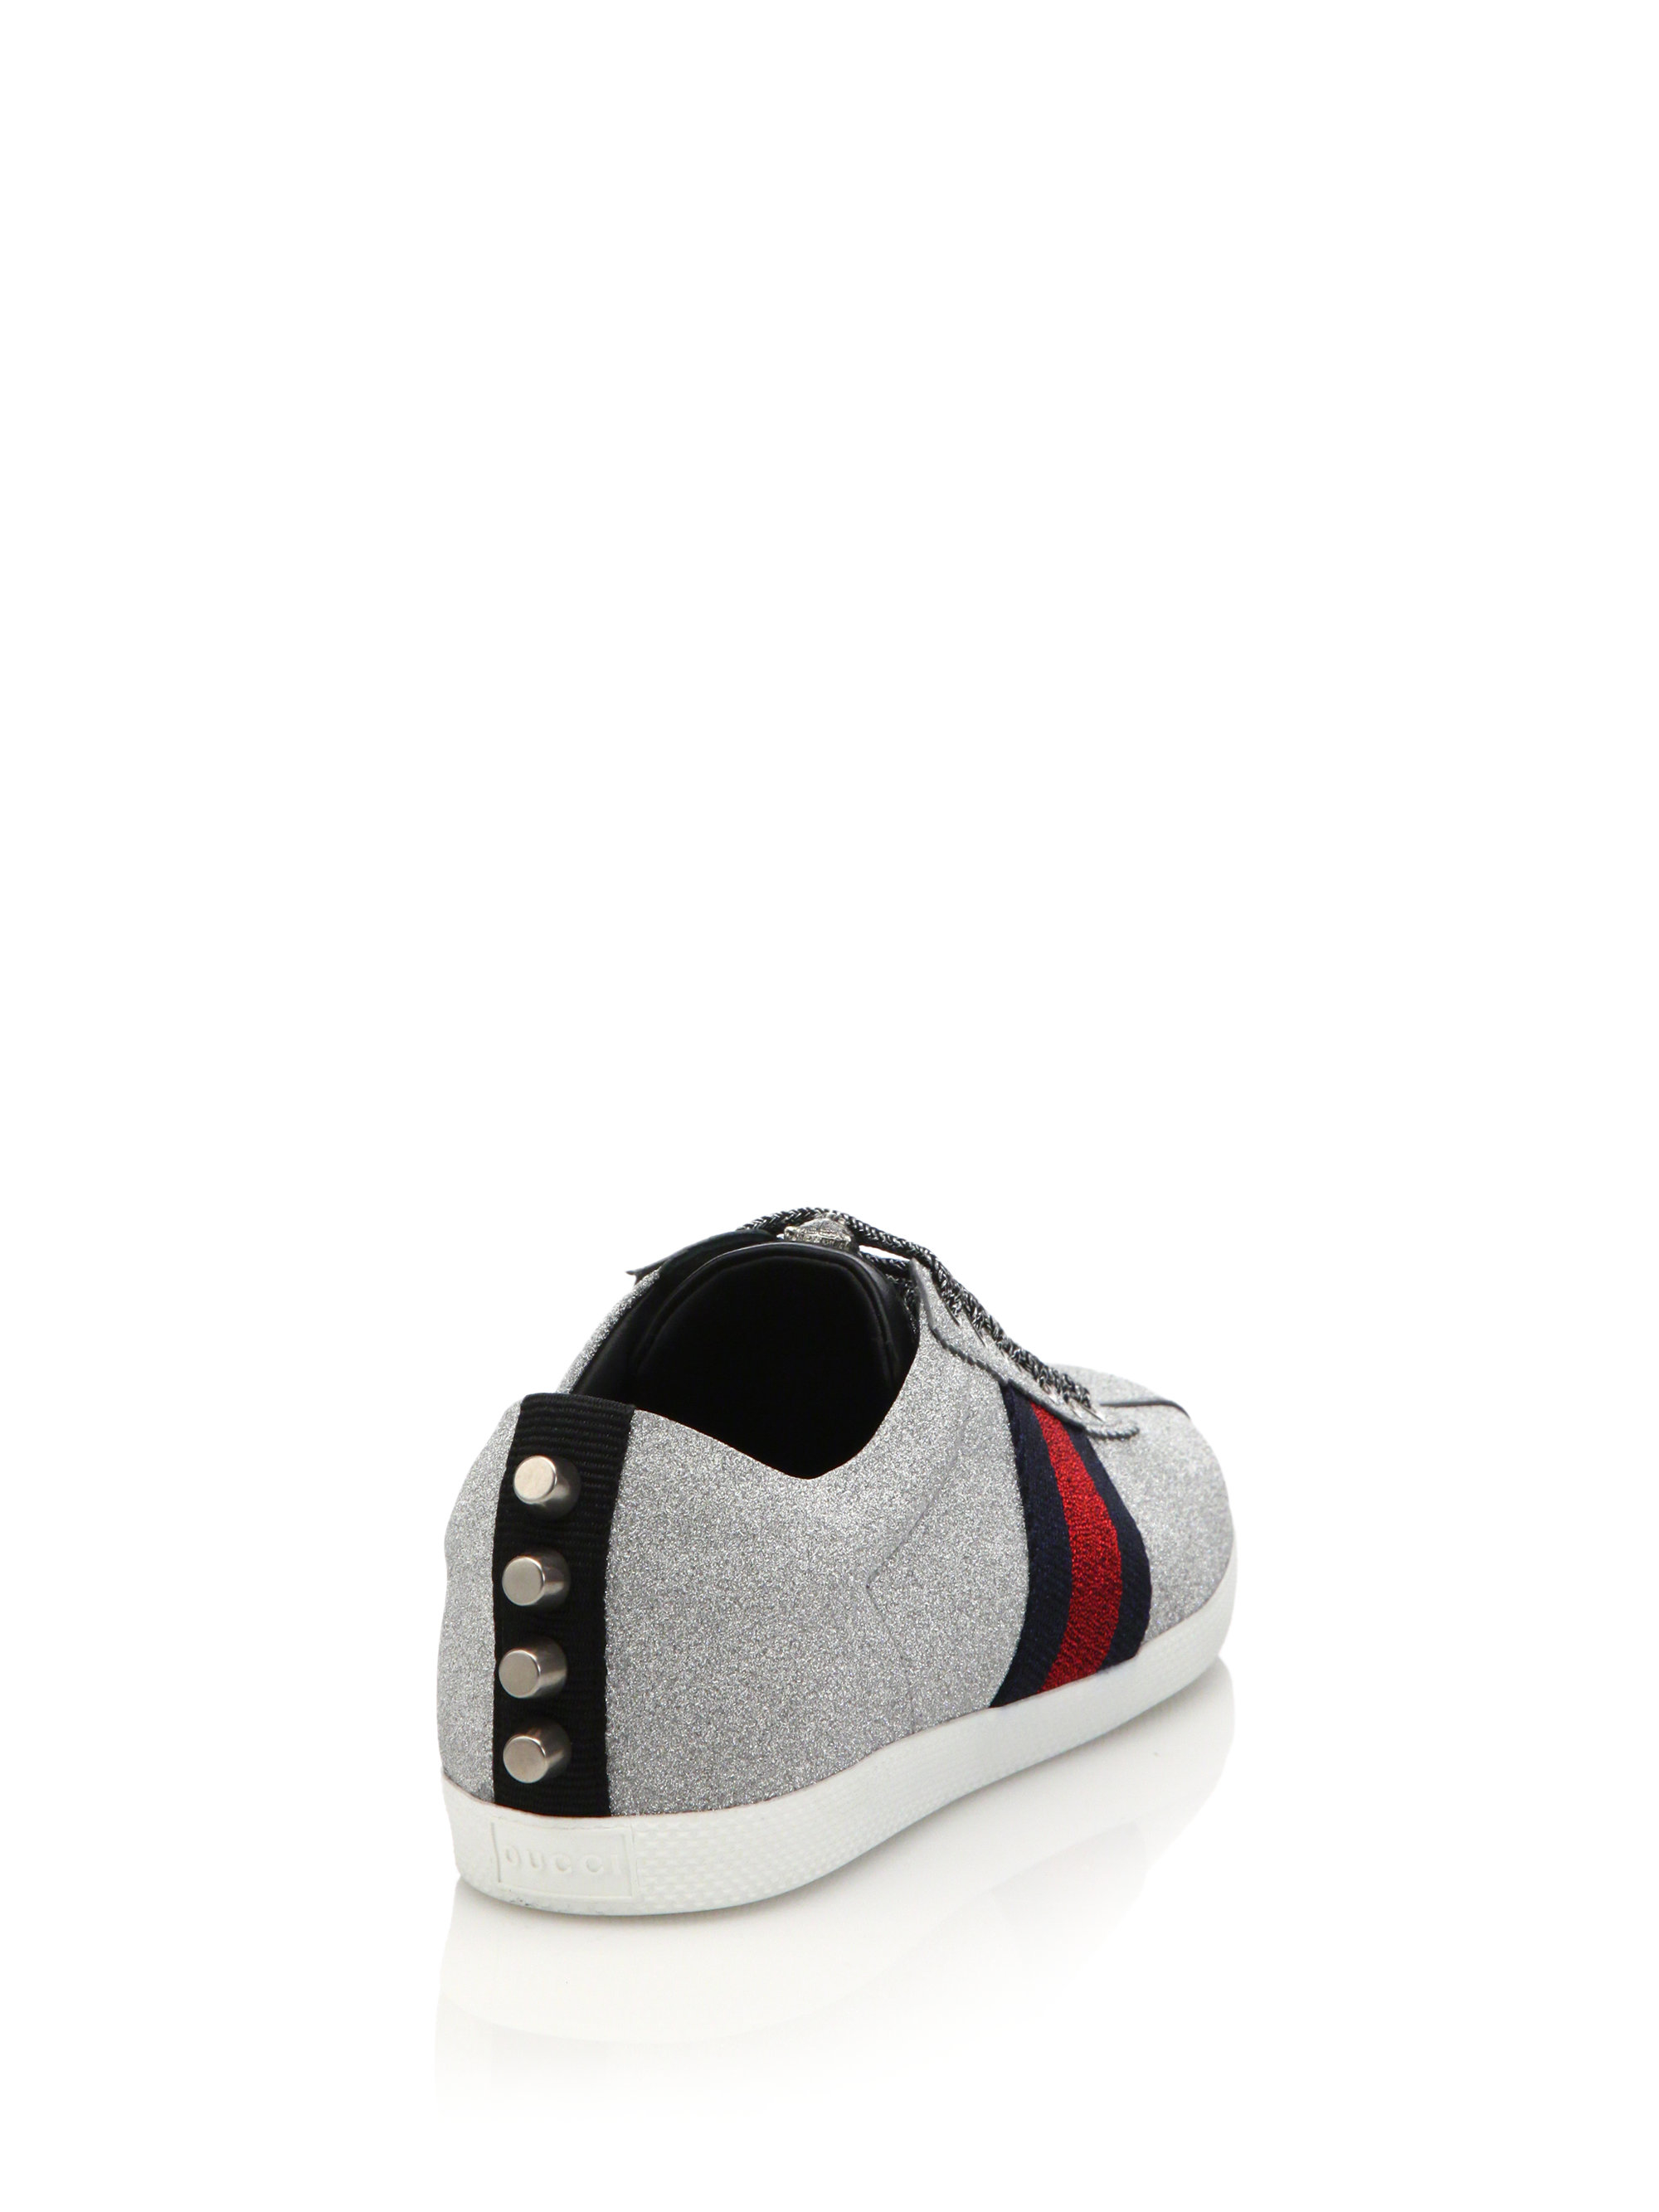 Gucci Lace Bambi Glitter Sneakers in